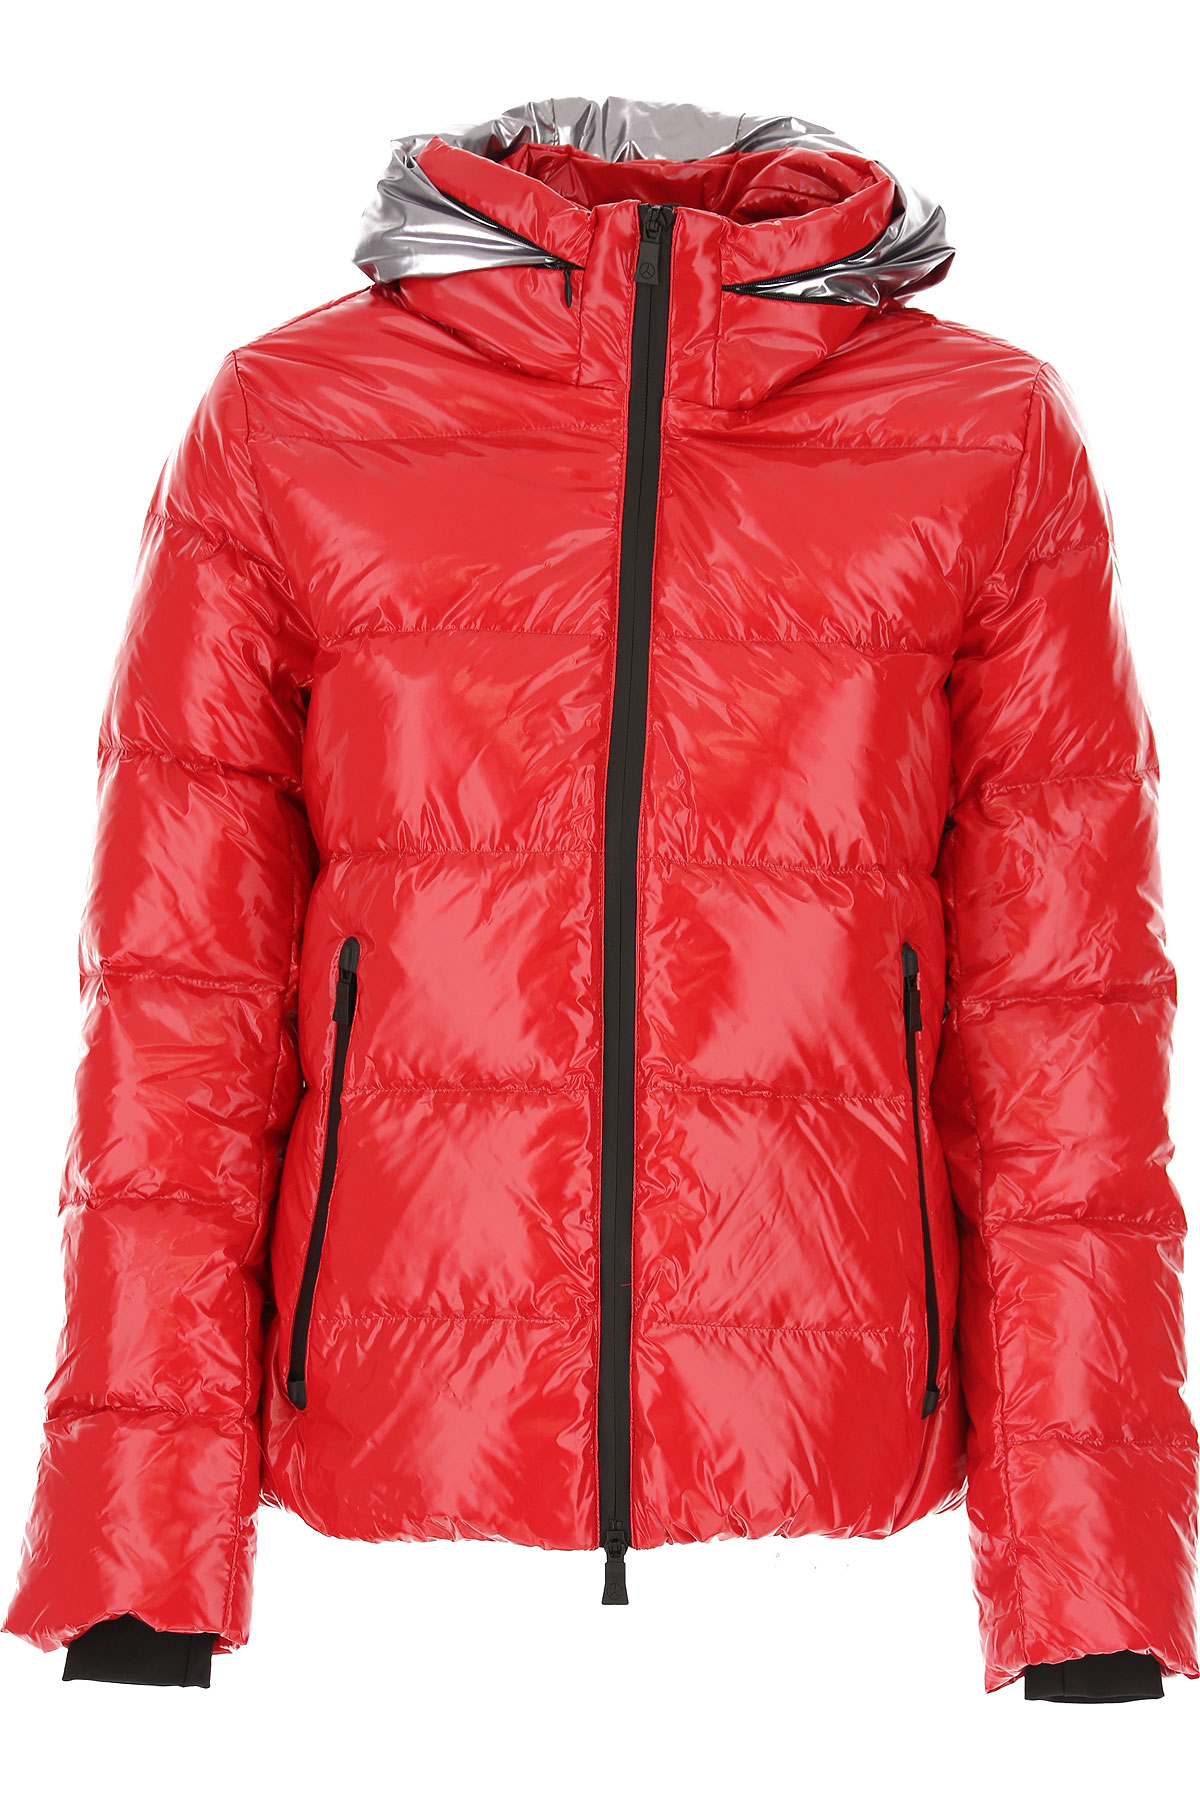 People of Shibuya Down Jacket for Women, Puffer Ski Jacket On Sale, Flame Red, polyamide, 2019, 4 6 8